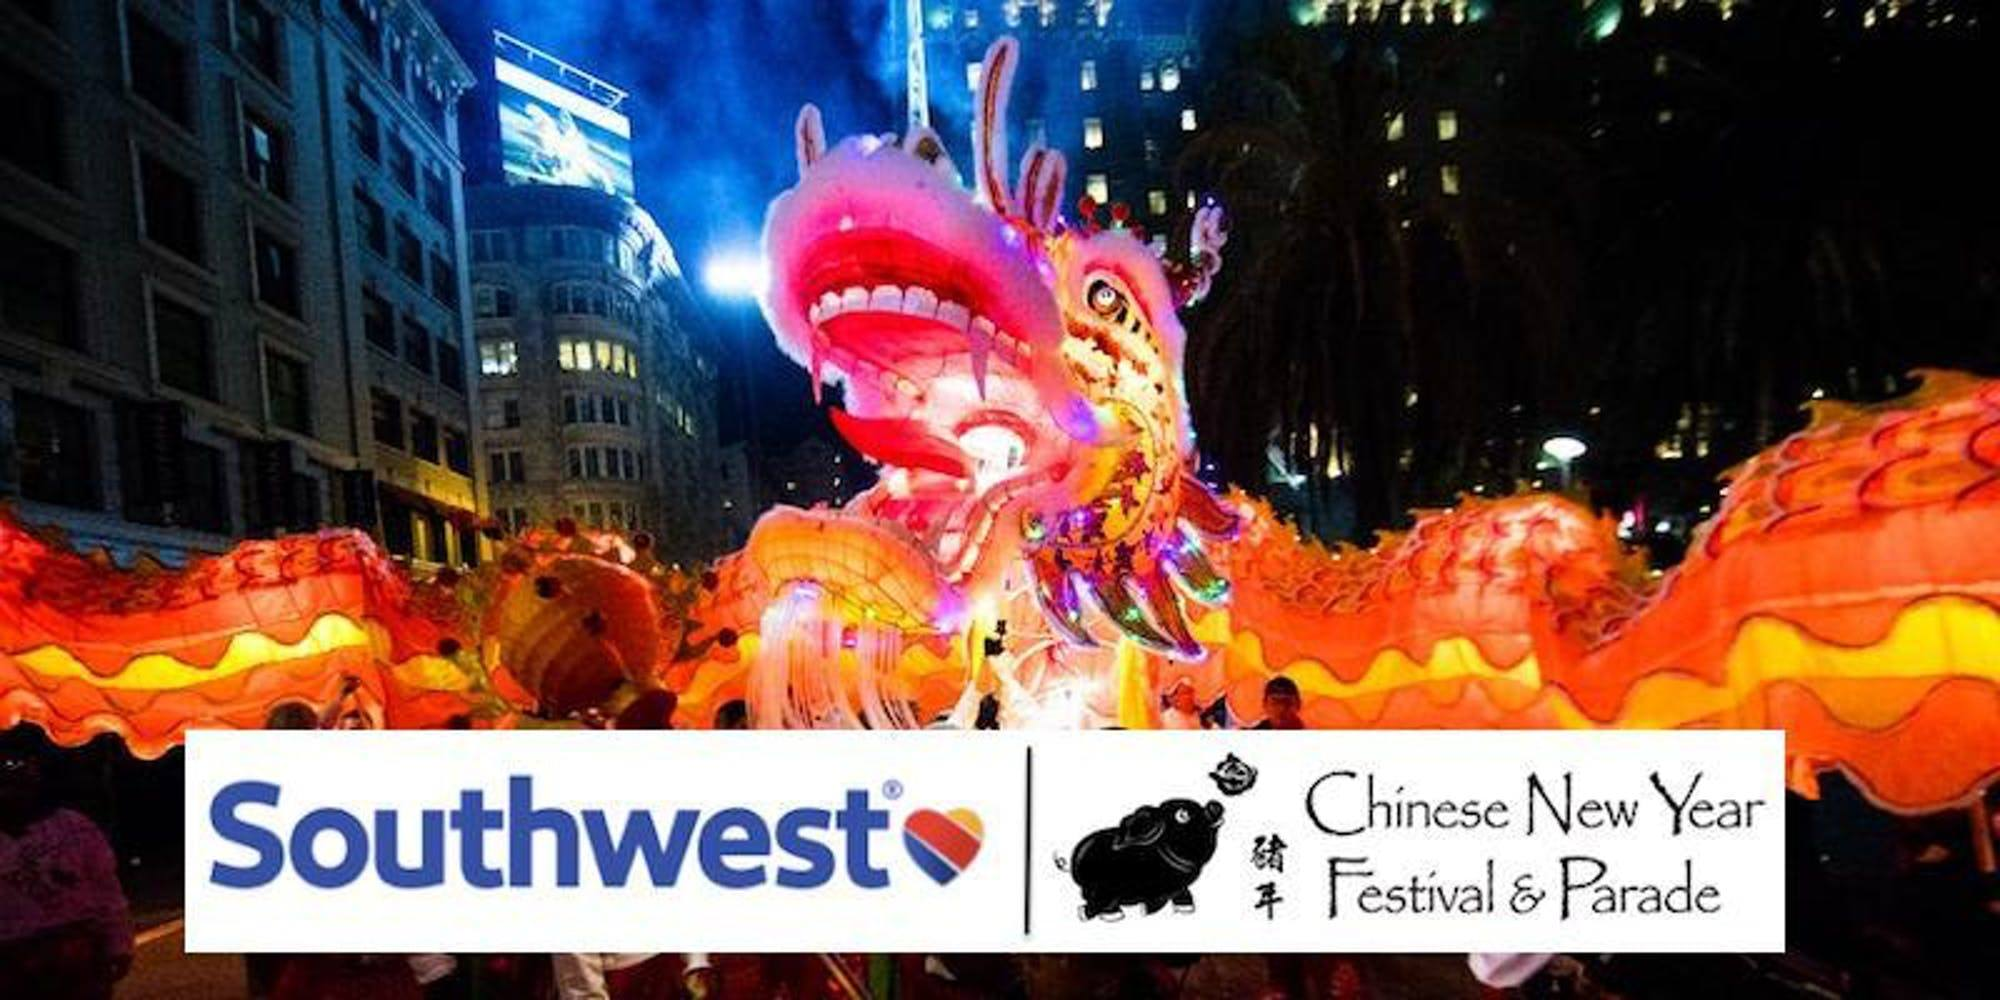 Southwest Airlines Chinese New Year Parade - 2019